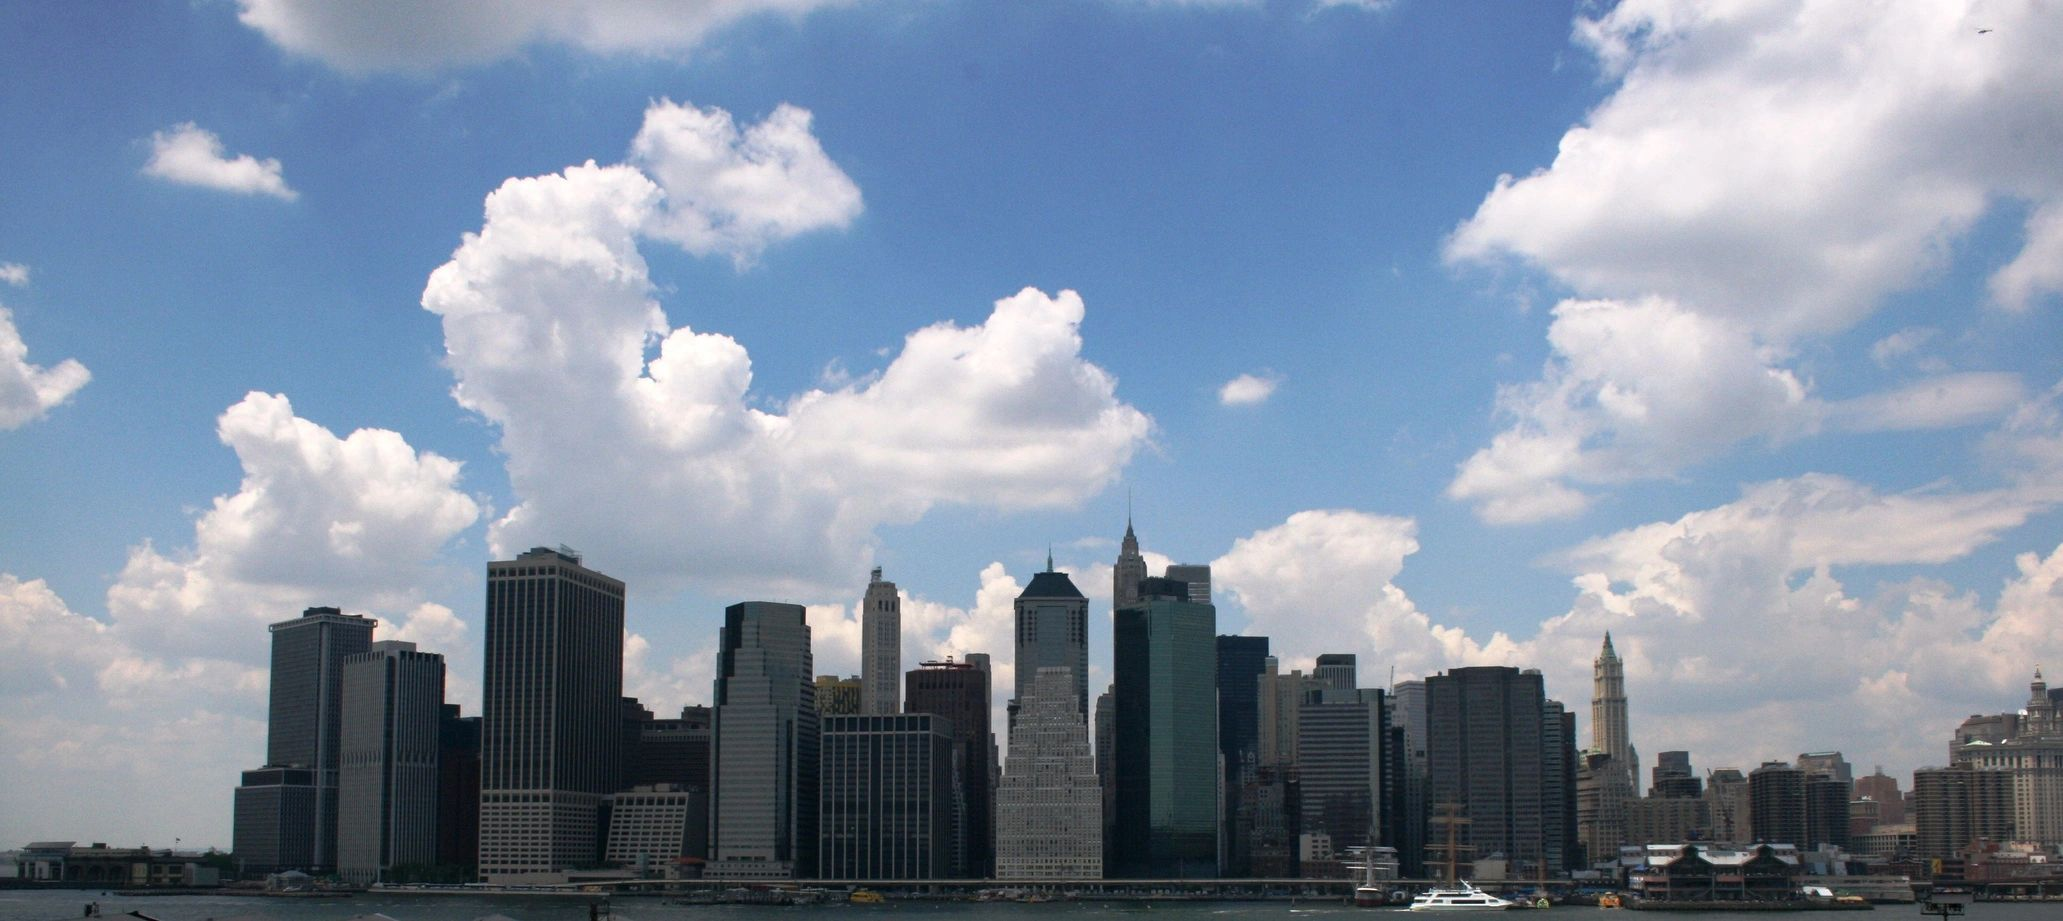 A skyline featuring skyscrapers and buildings.